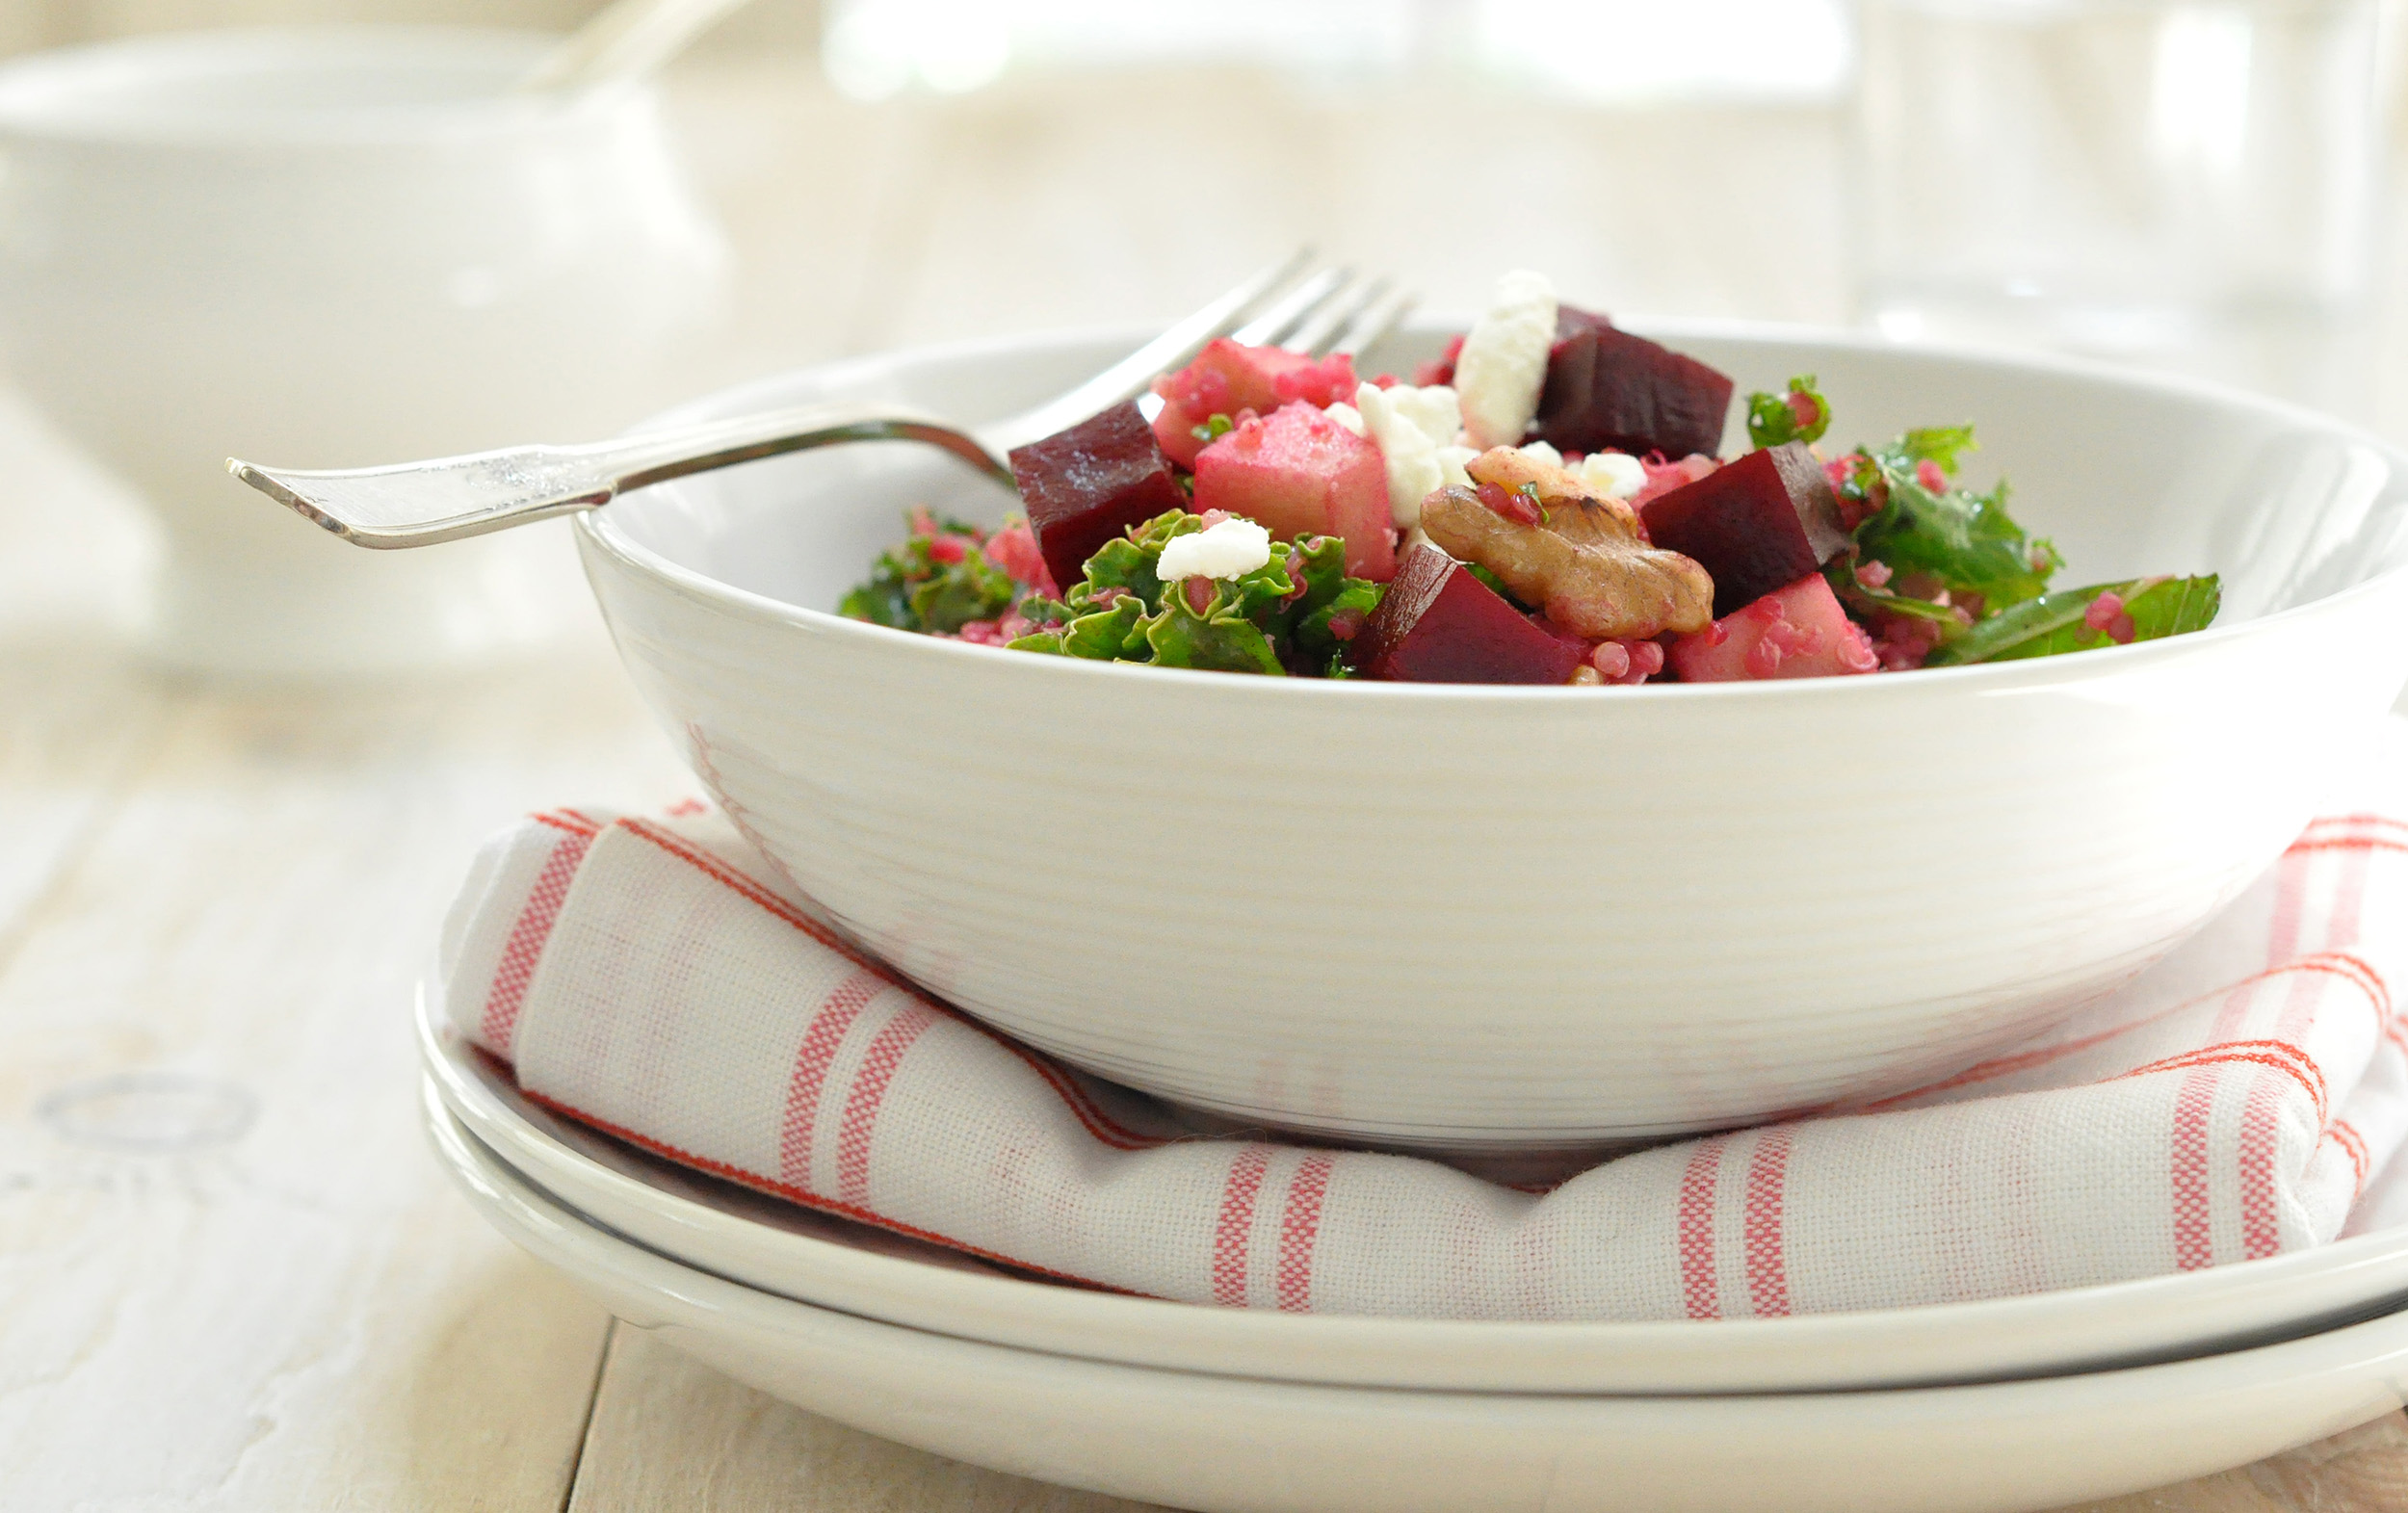 Beet Salad with Apple, Quinoa, Kale and Walnuts